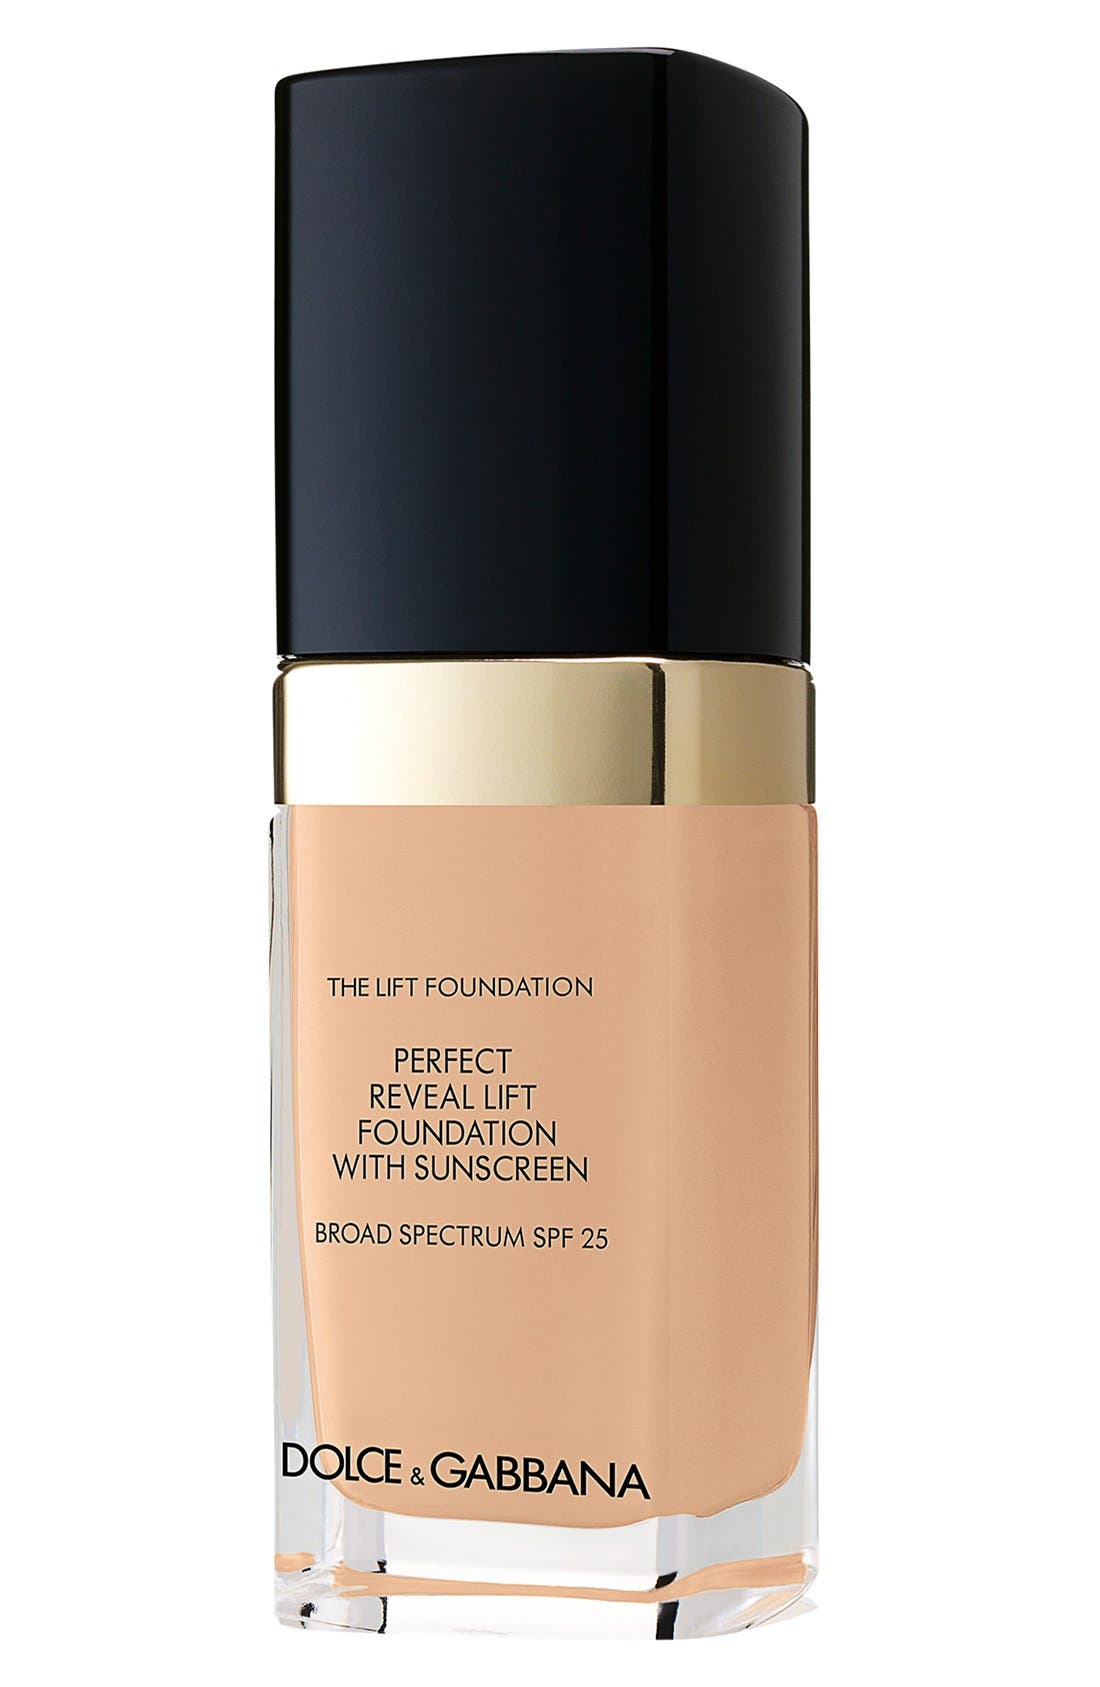 Dolce&Gabbana Beauty 'The Lift' Foundation